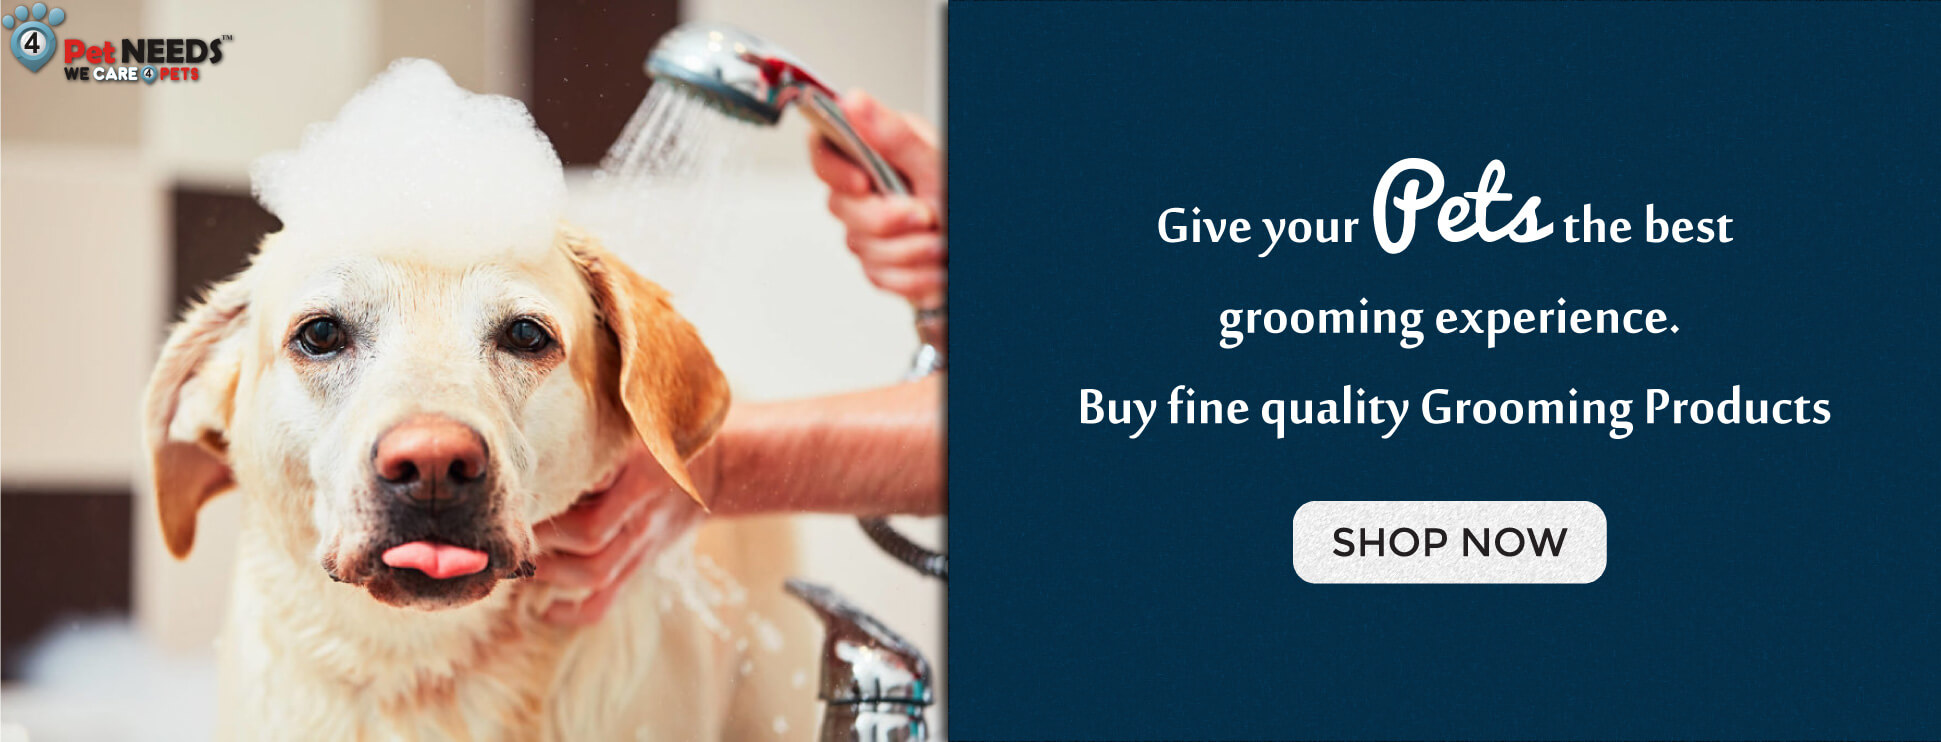 Grooming-Banner-main-website2.jpg